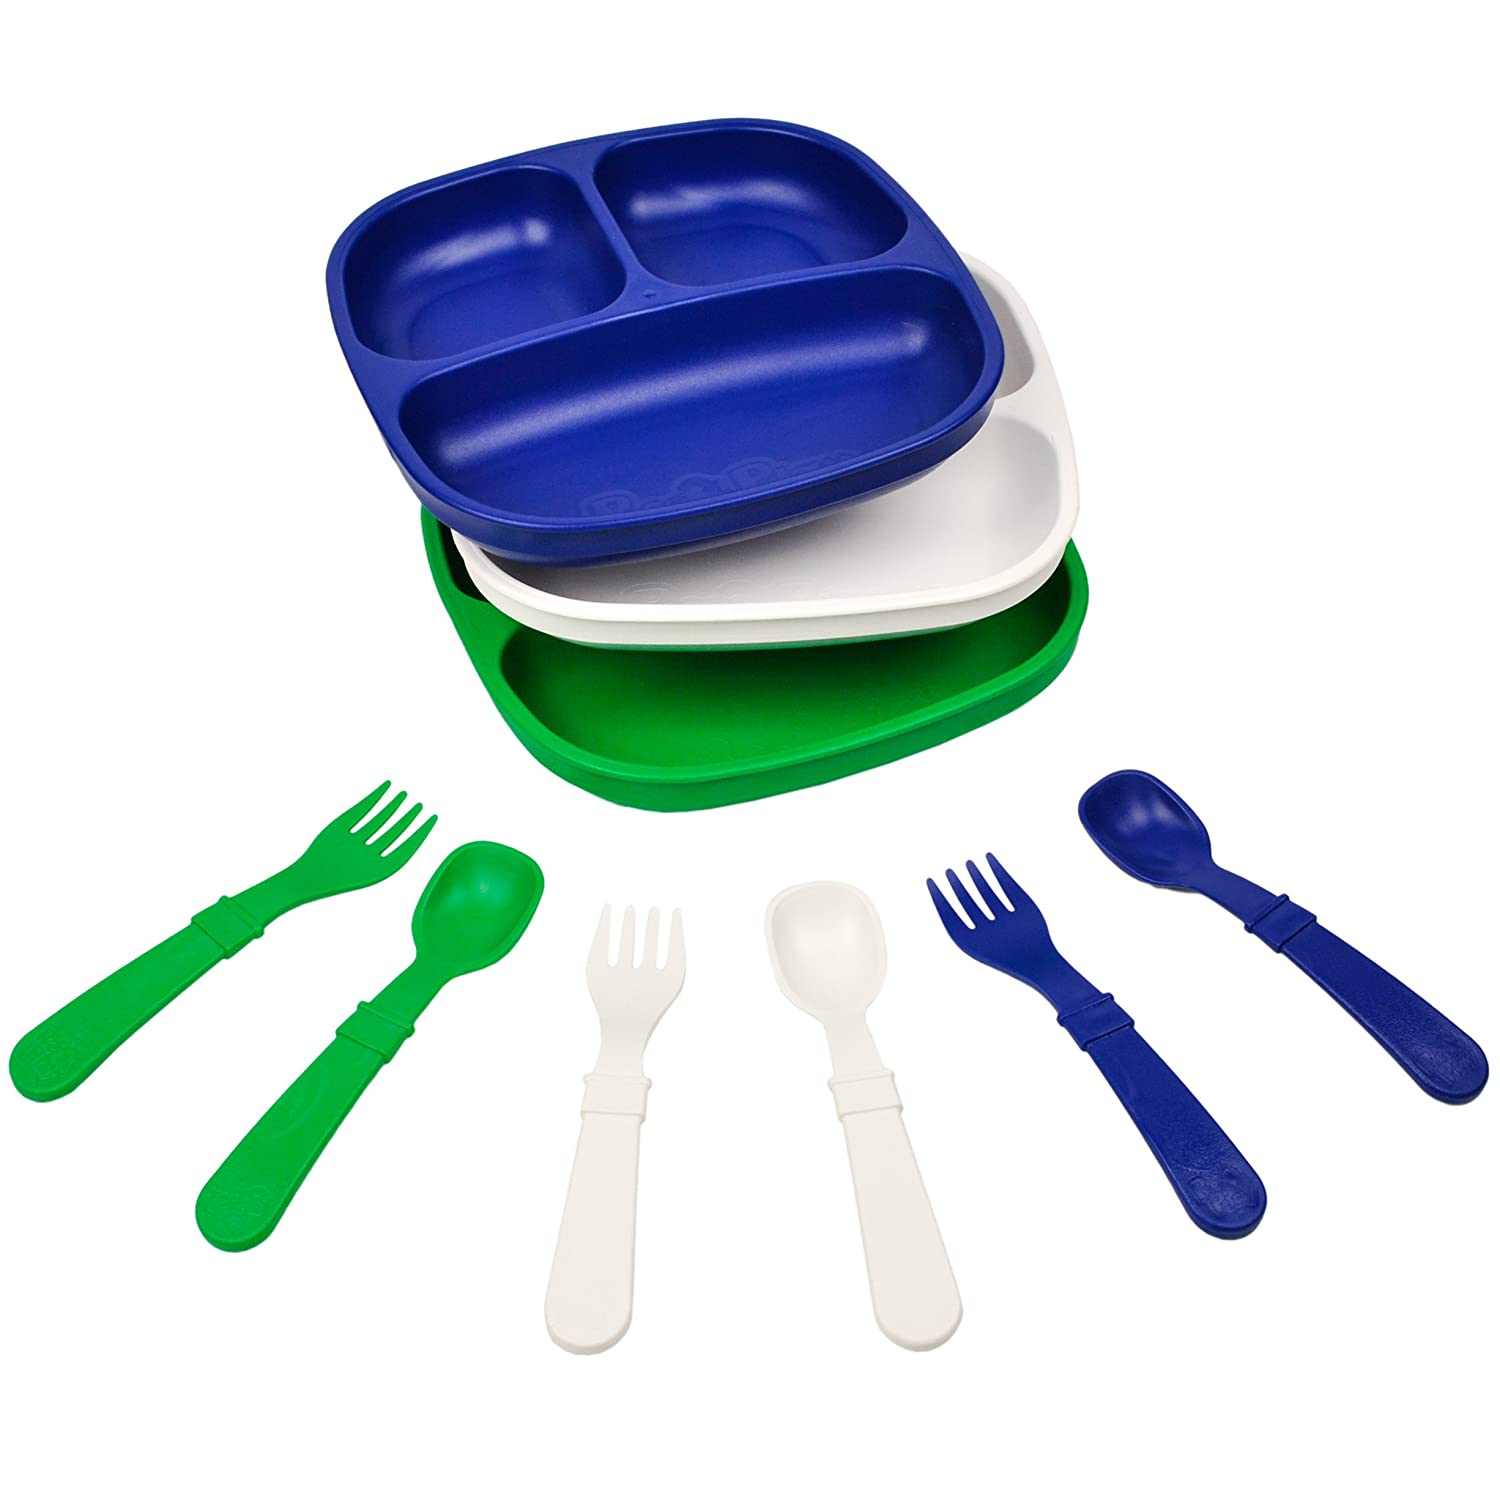 Aqua Re-Play Made in The USA Dinnerware Set Sky Blue 3pk Divided Plates with Matching Utensils Lime Green Under The Sea